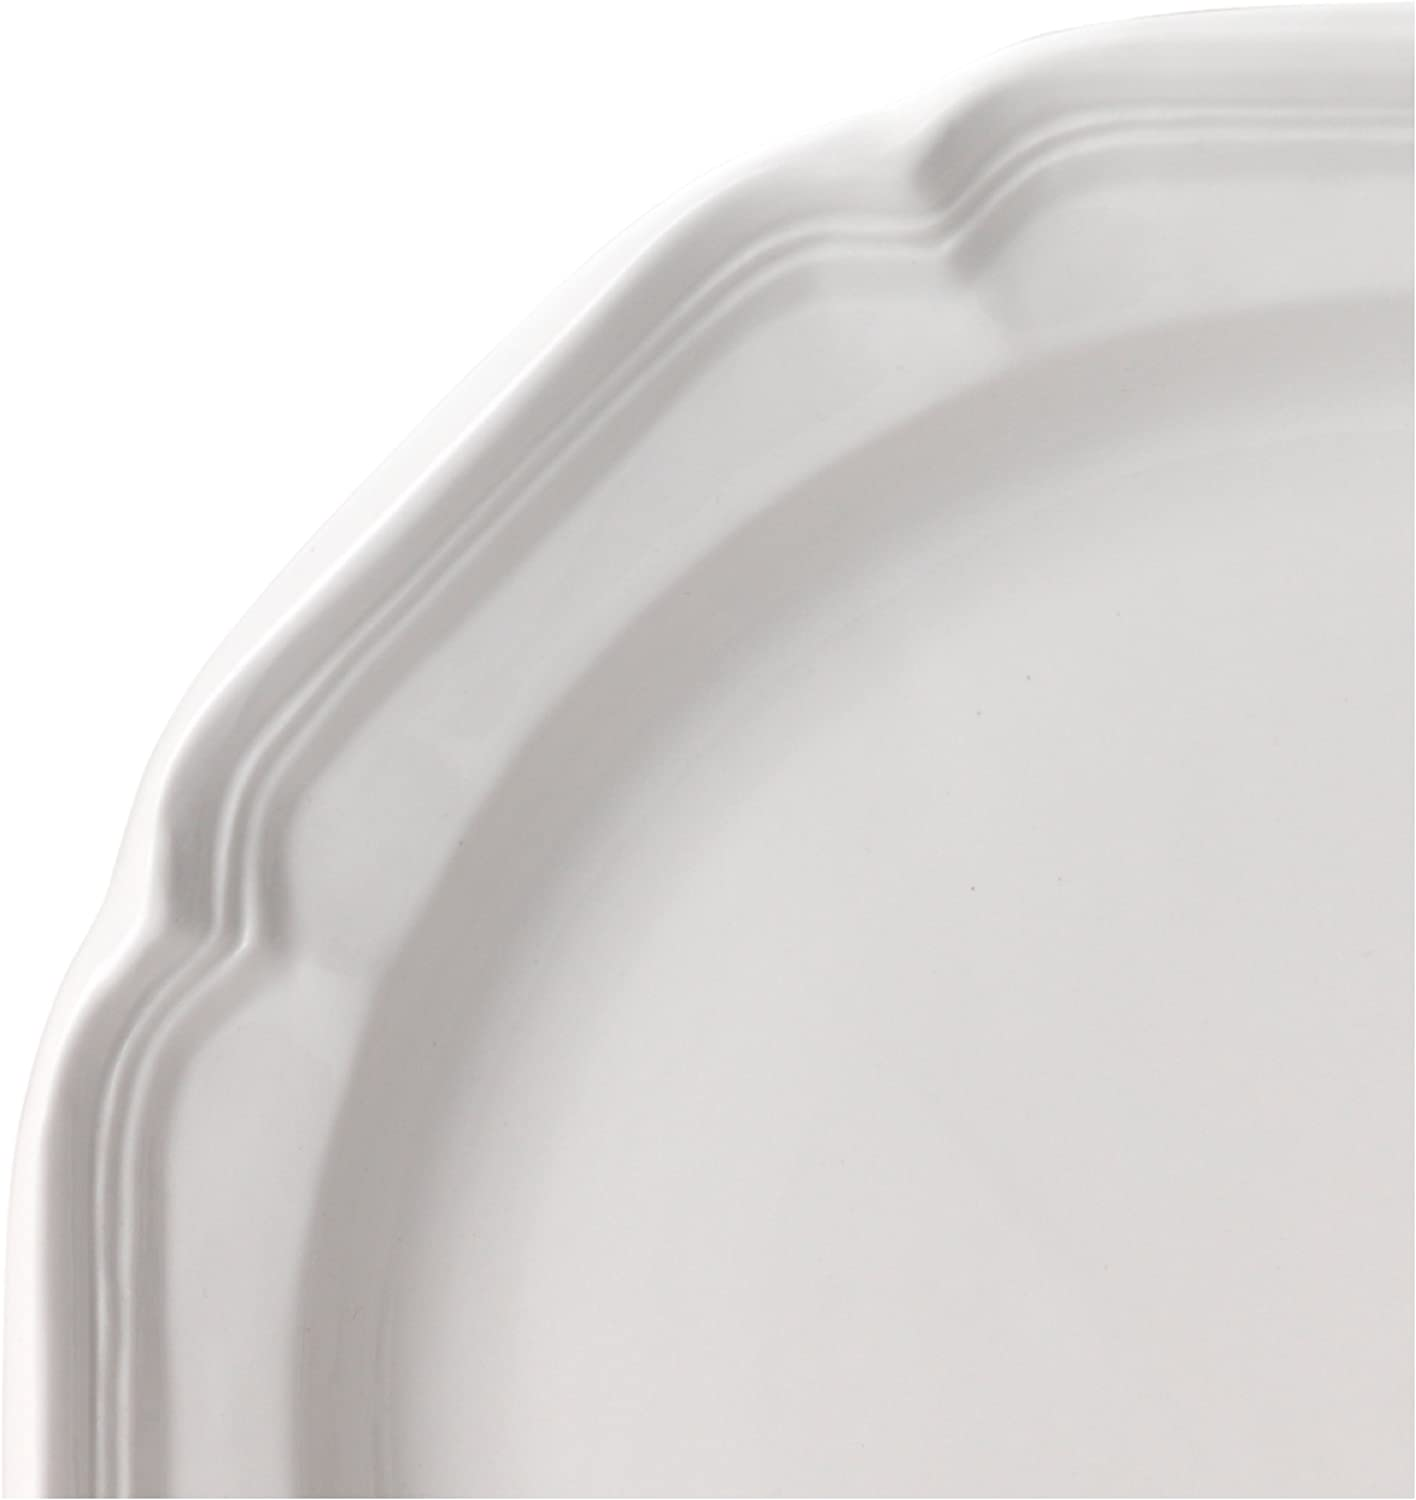   Mikasa French Countryside Dinner Plate, White, 10.75-Inch - F9000-201: Cereal Bowls